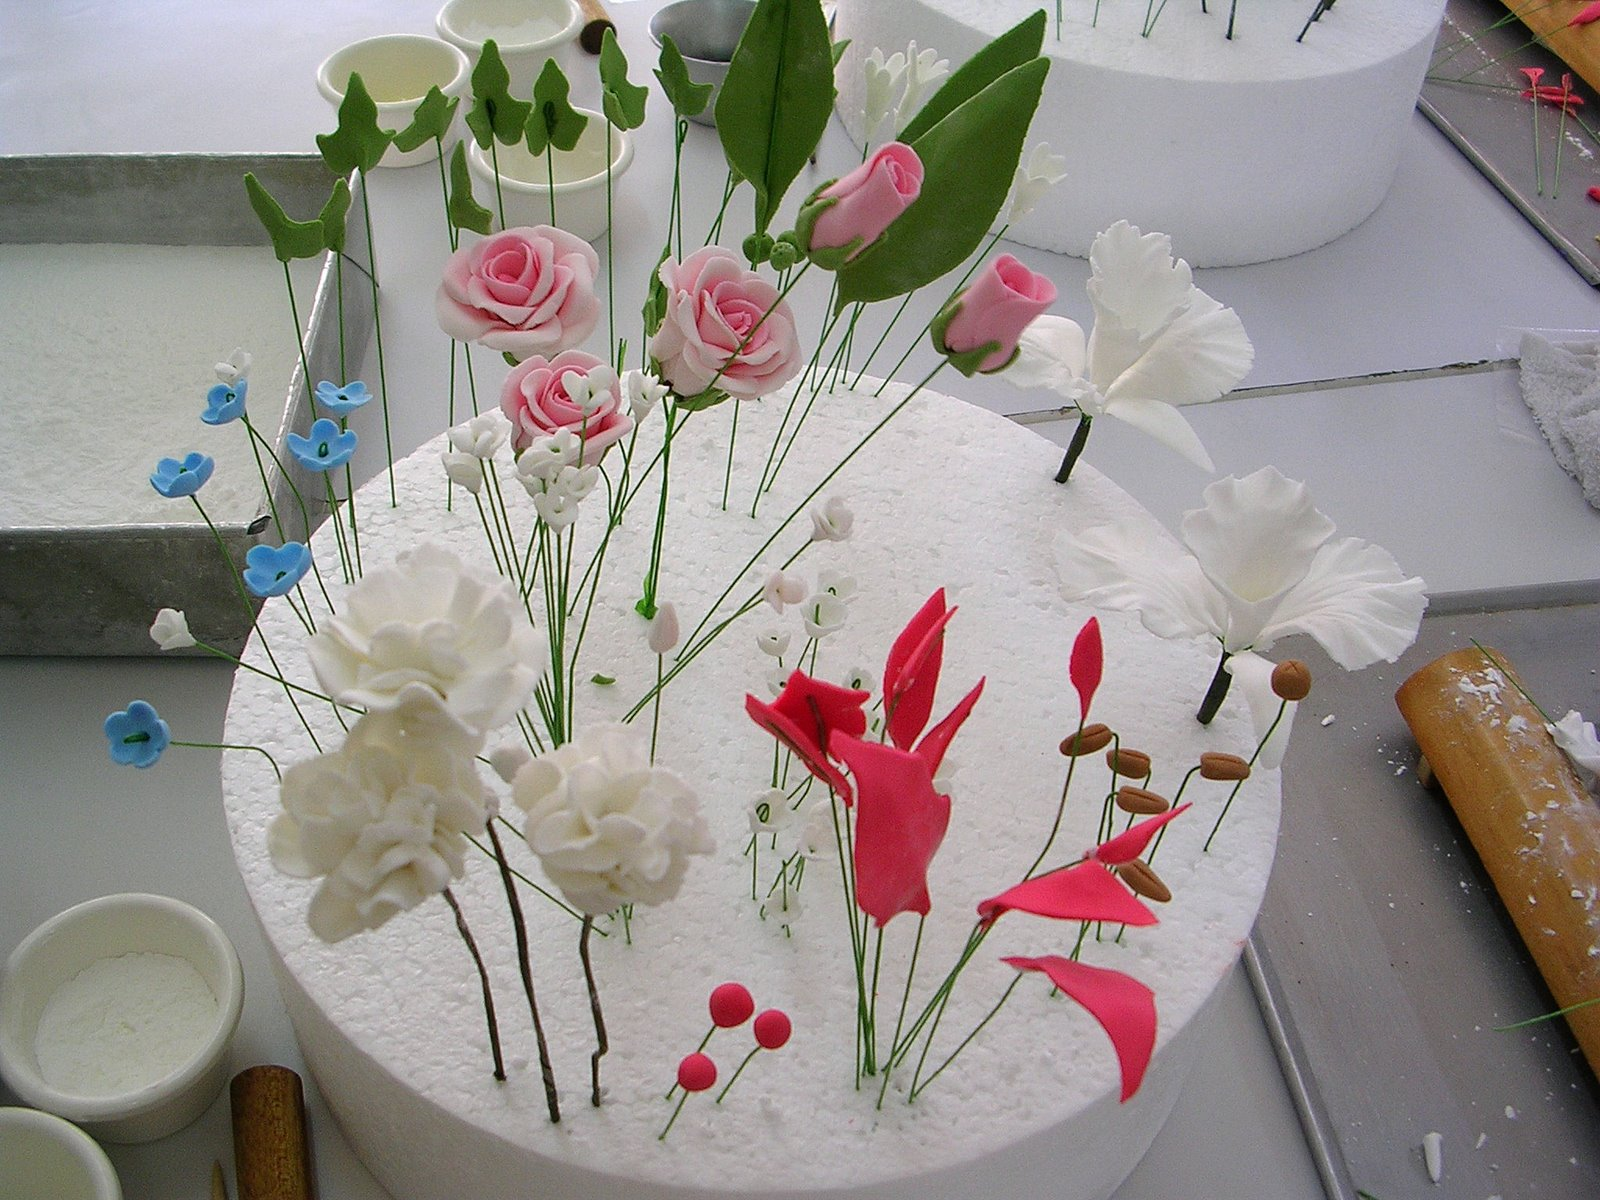 Craft pastry gumpaste flowers 1 2 3 gum paste flowers creatividades latinas shows you how to make hydrangeas mums and sweet peasese are so realistic that people wont believe they are izmirmasajfo